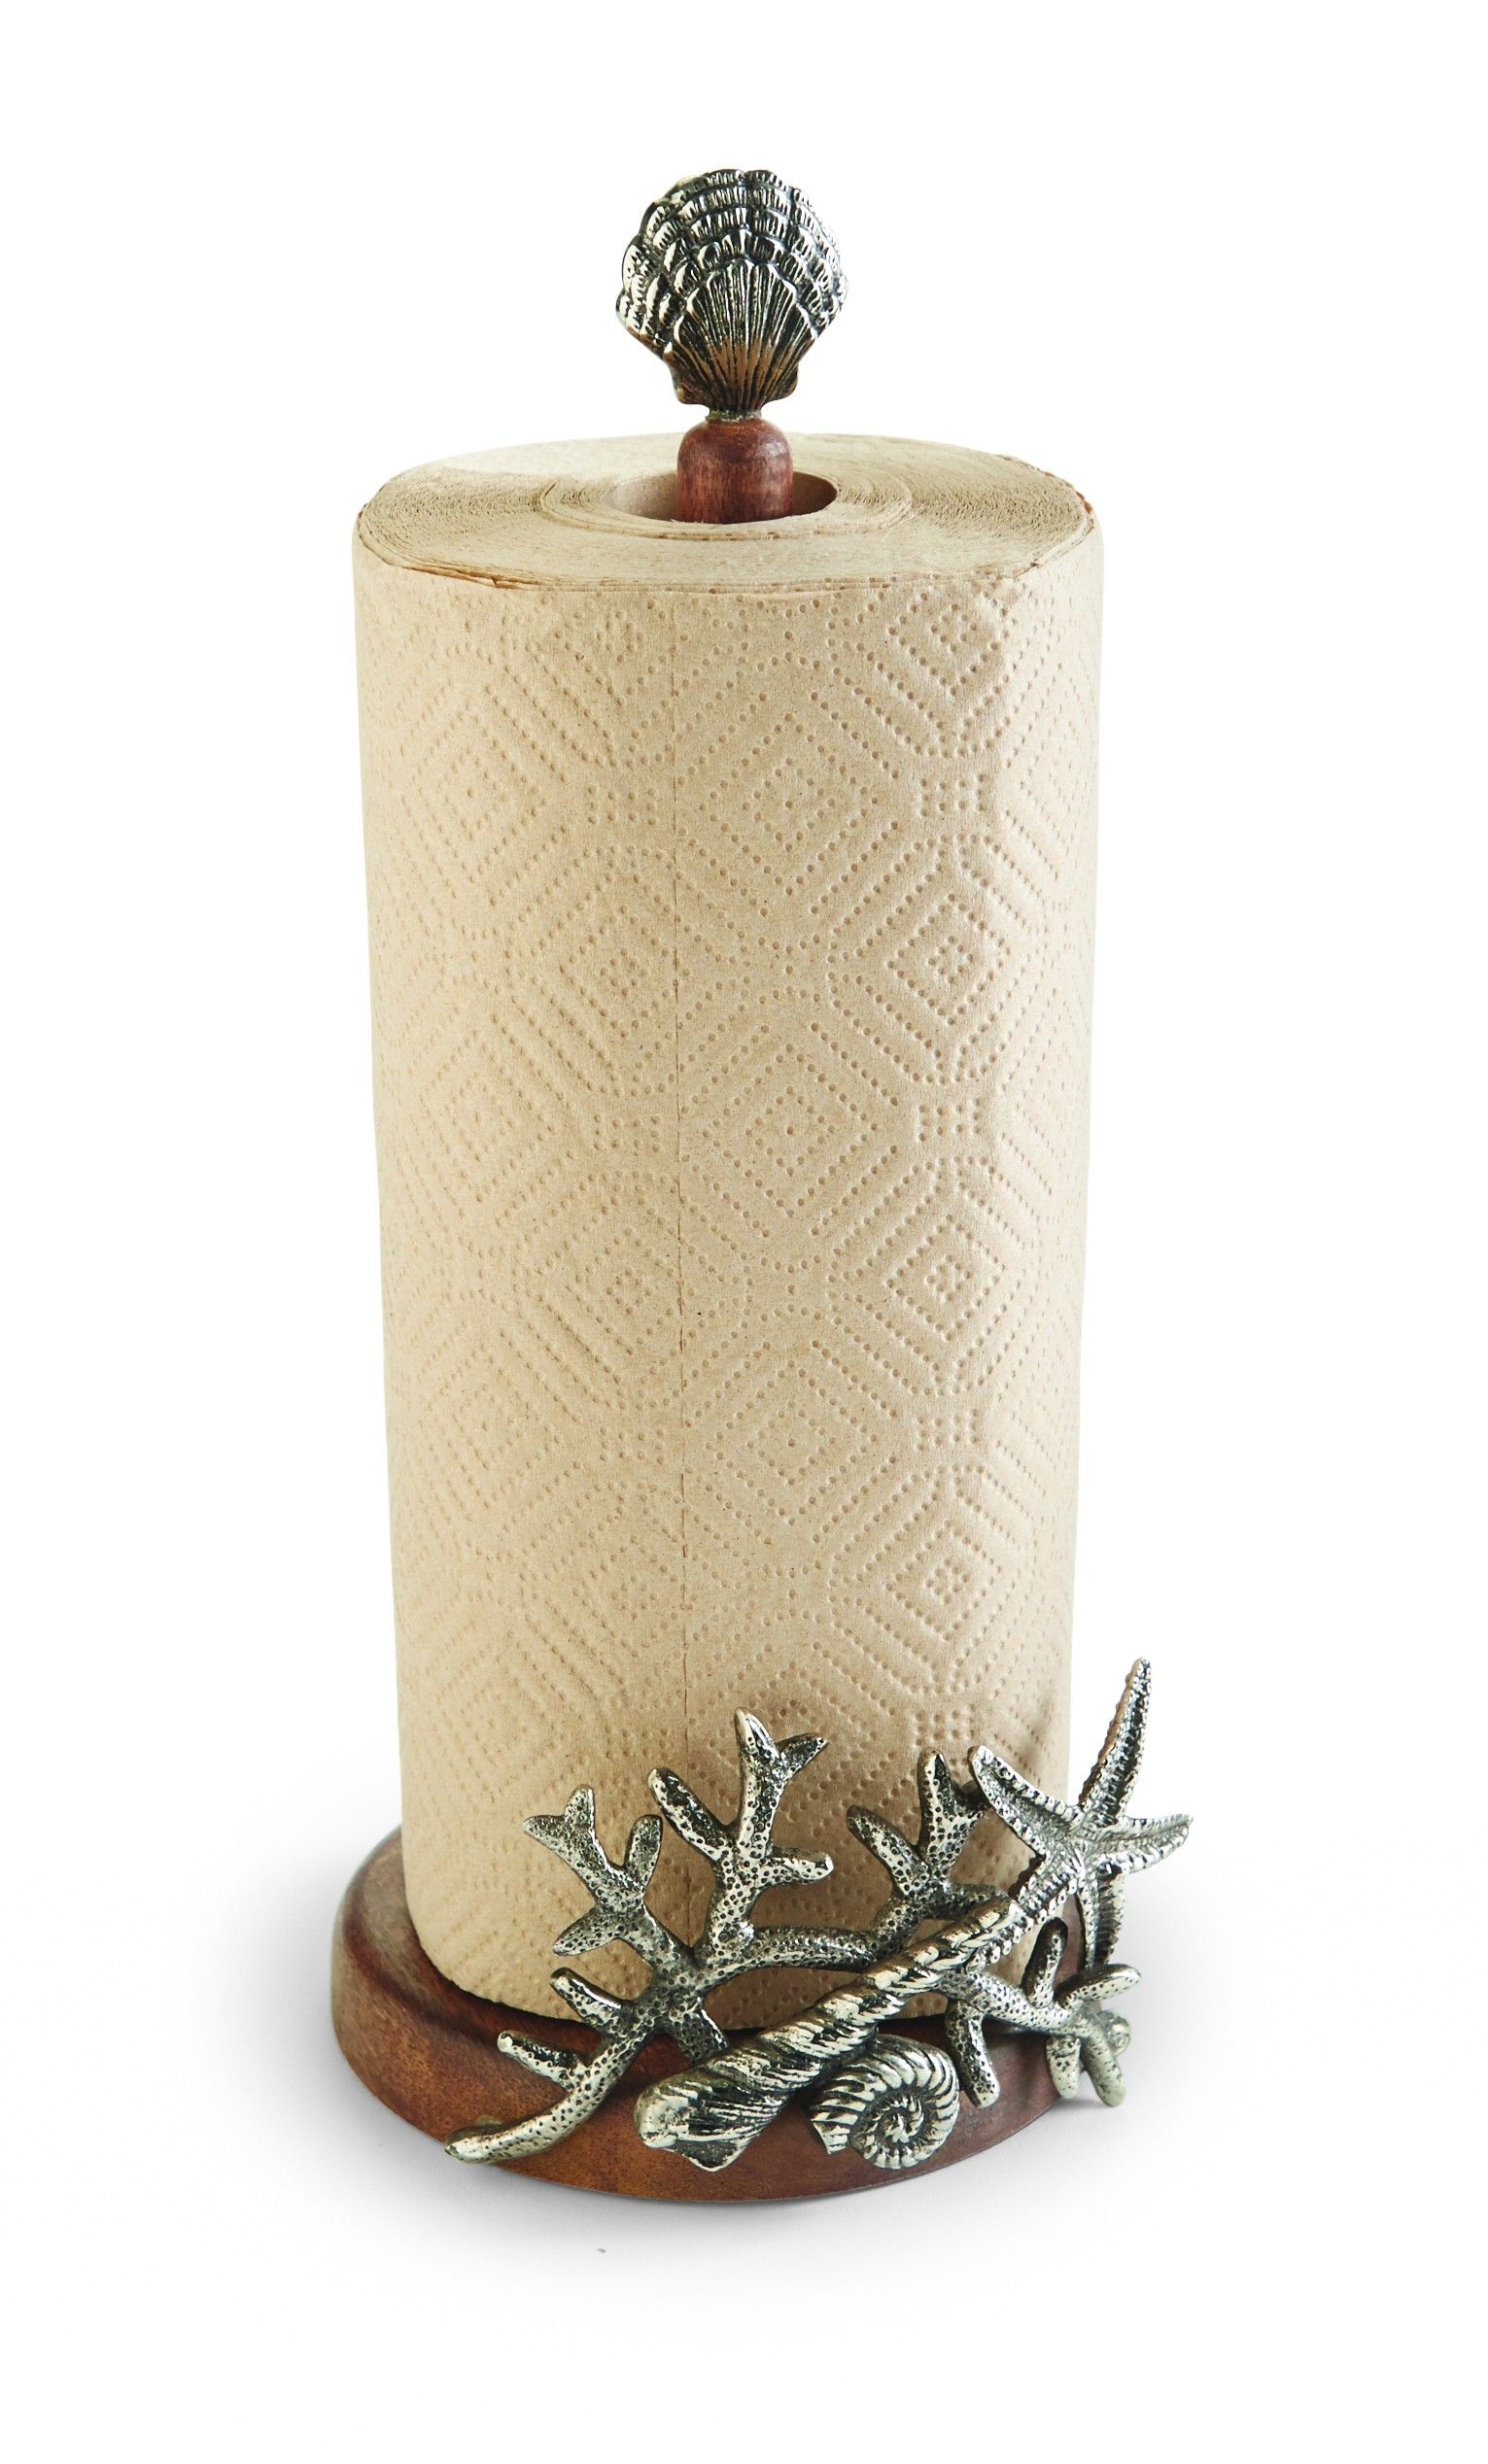 Coastal Paper Towel Holder Fair Coral & Starfish Paper Towel Holder  Coastal Decorating  Pinterest Design Inspiration